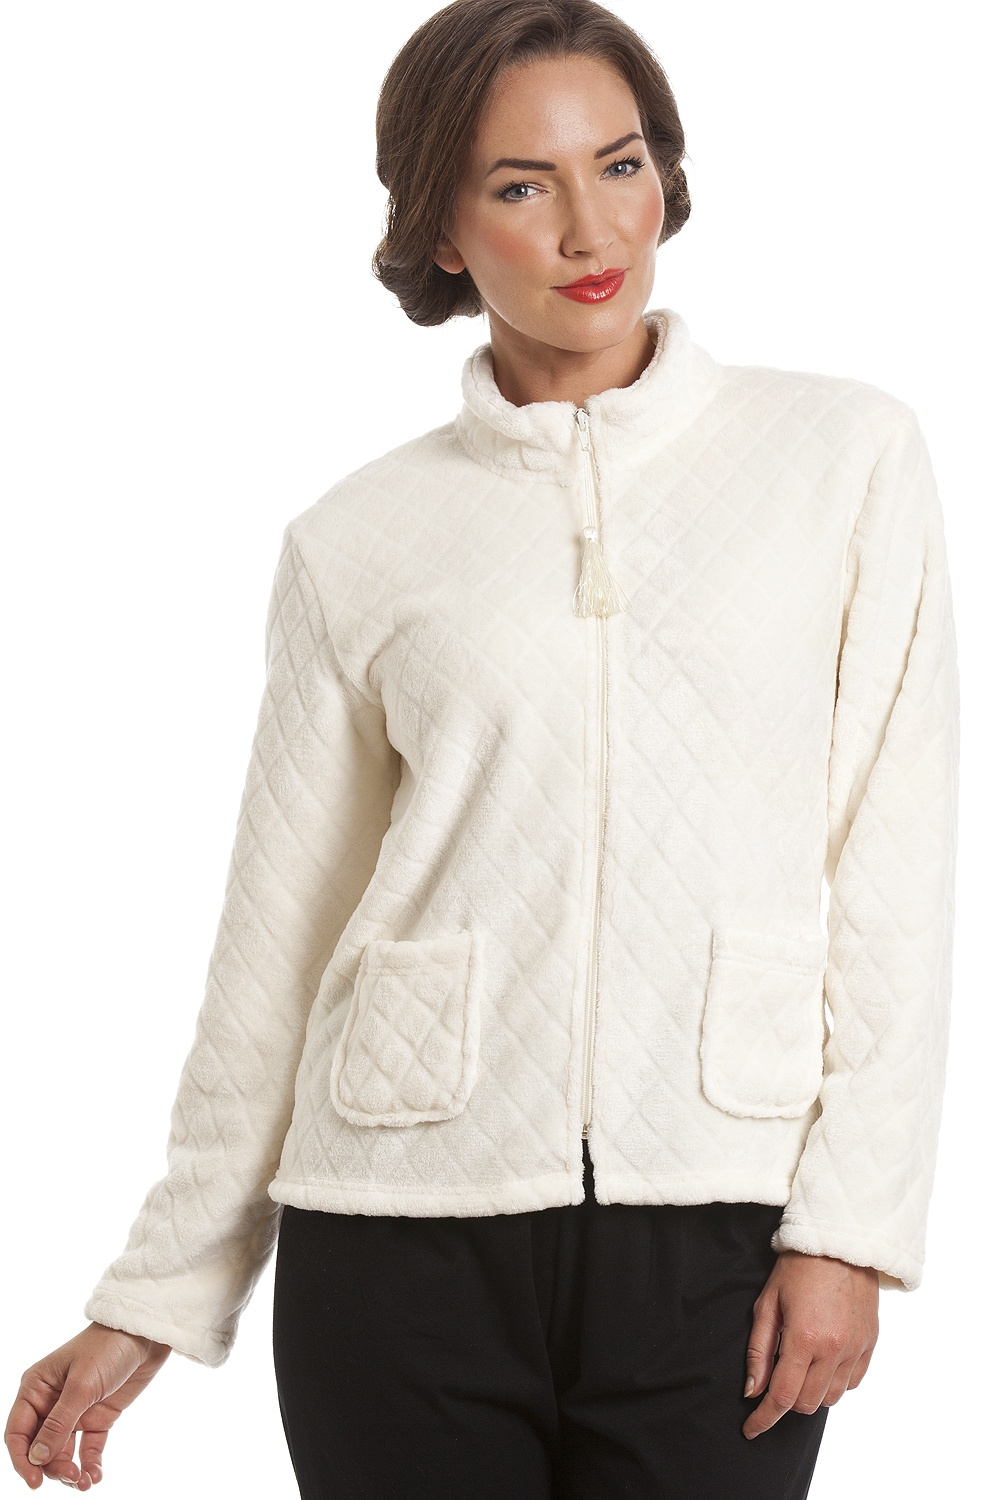 Where to buy bed jackets